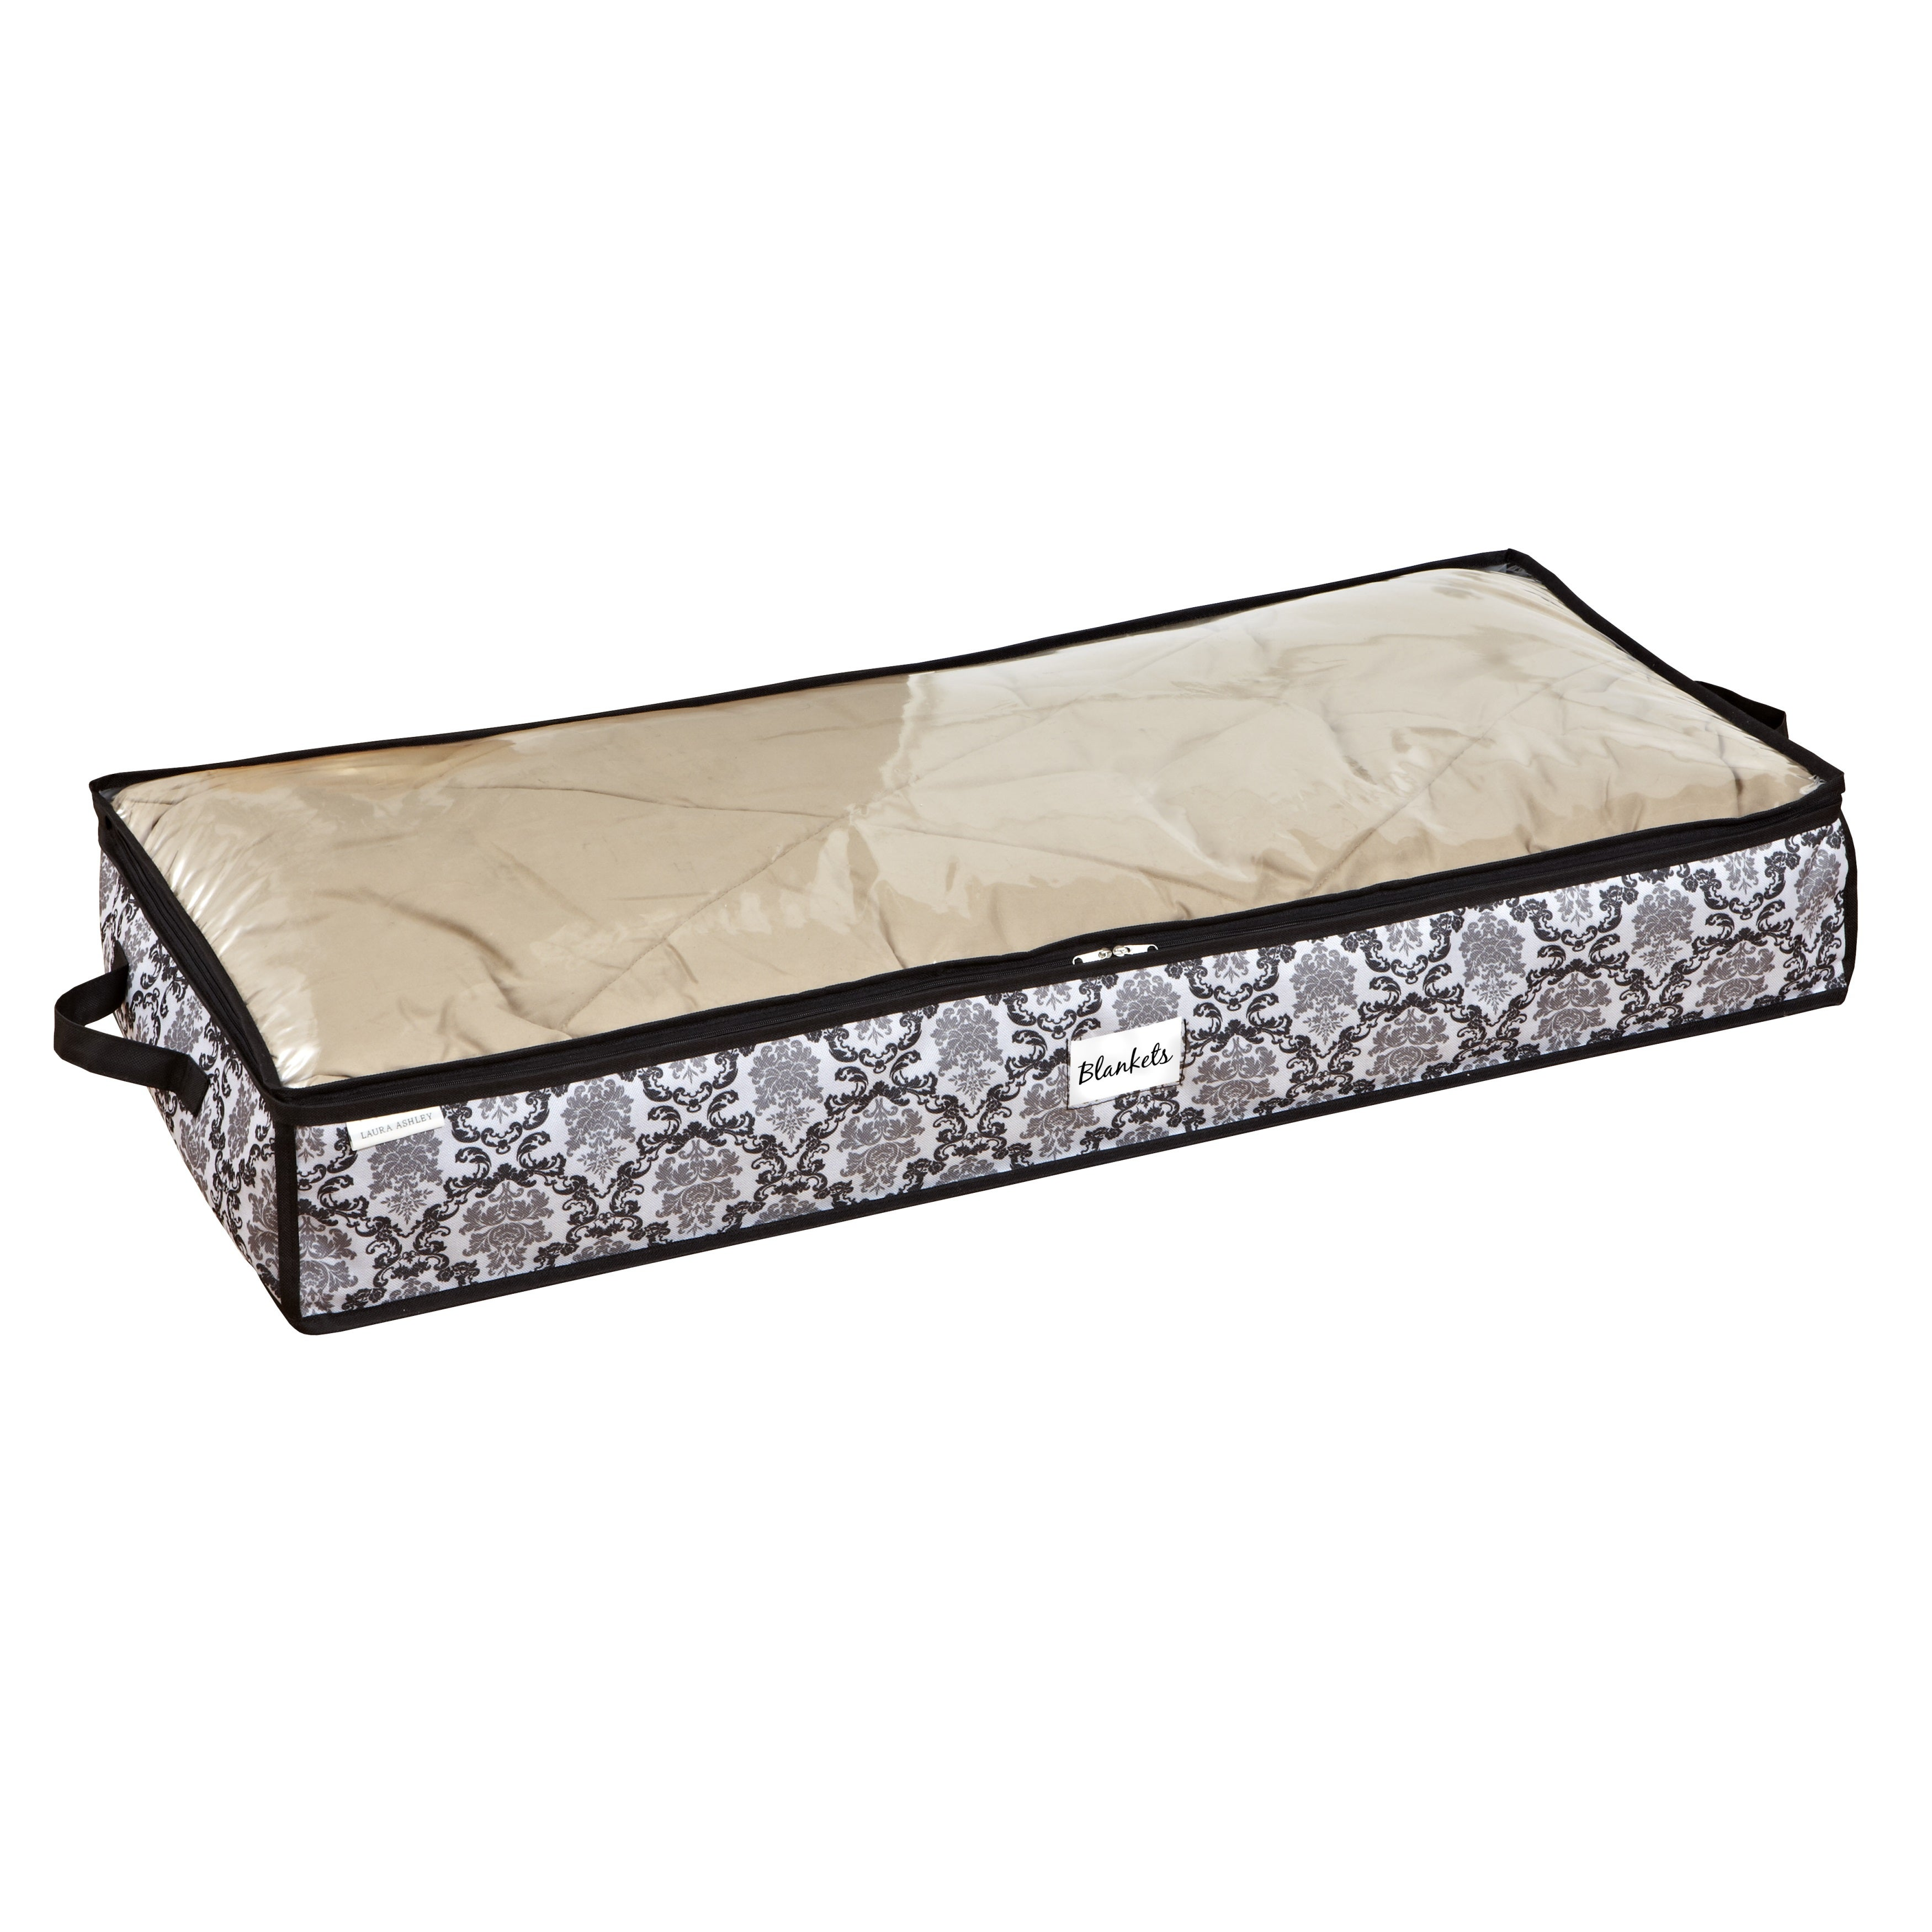 Laura Ashley Delancy Underbed Storage Bag at Sears.com